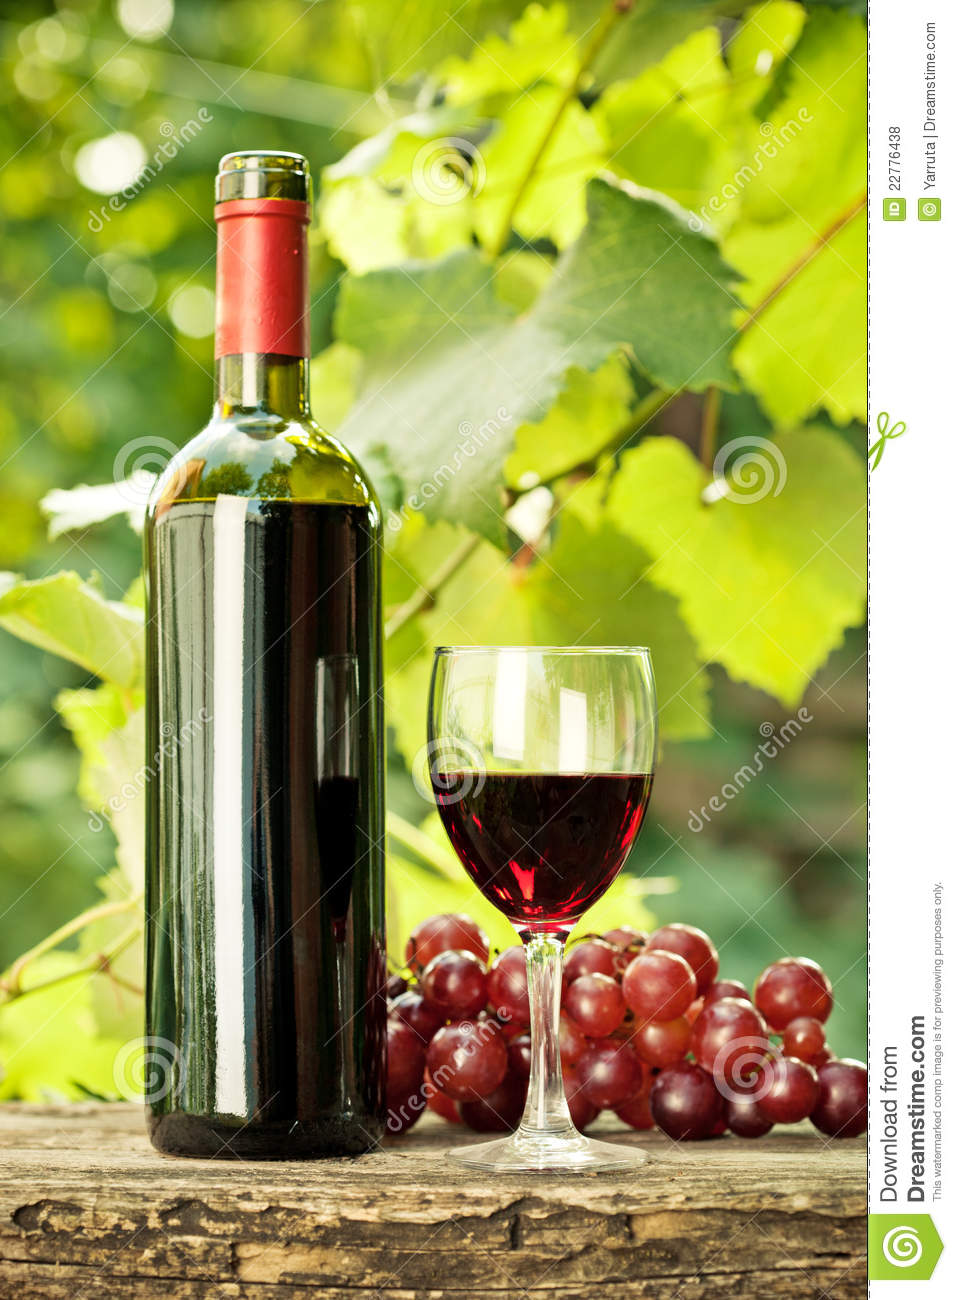 Red Wine Bottle Glass And Bunch Of Grapes Stock Photo